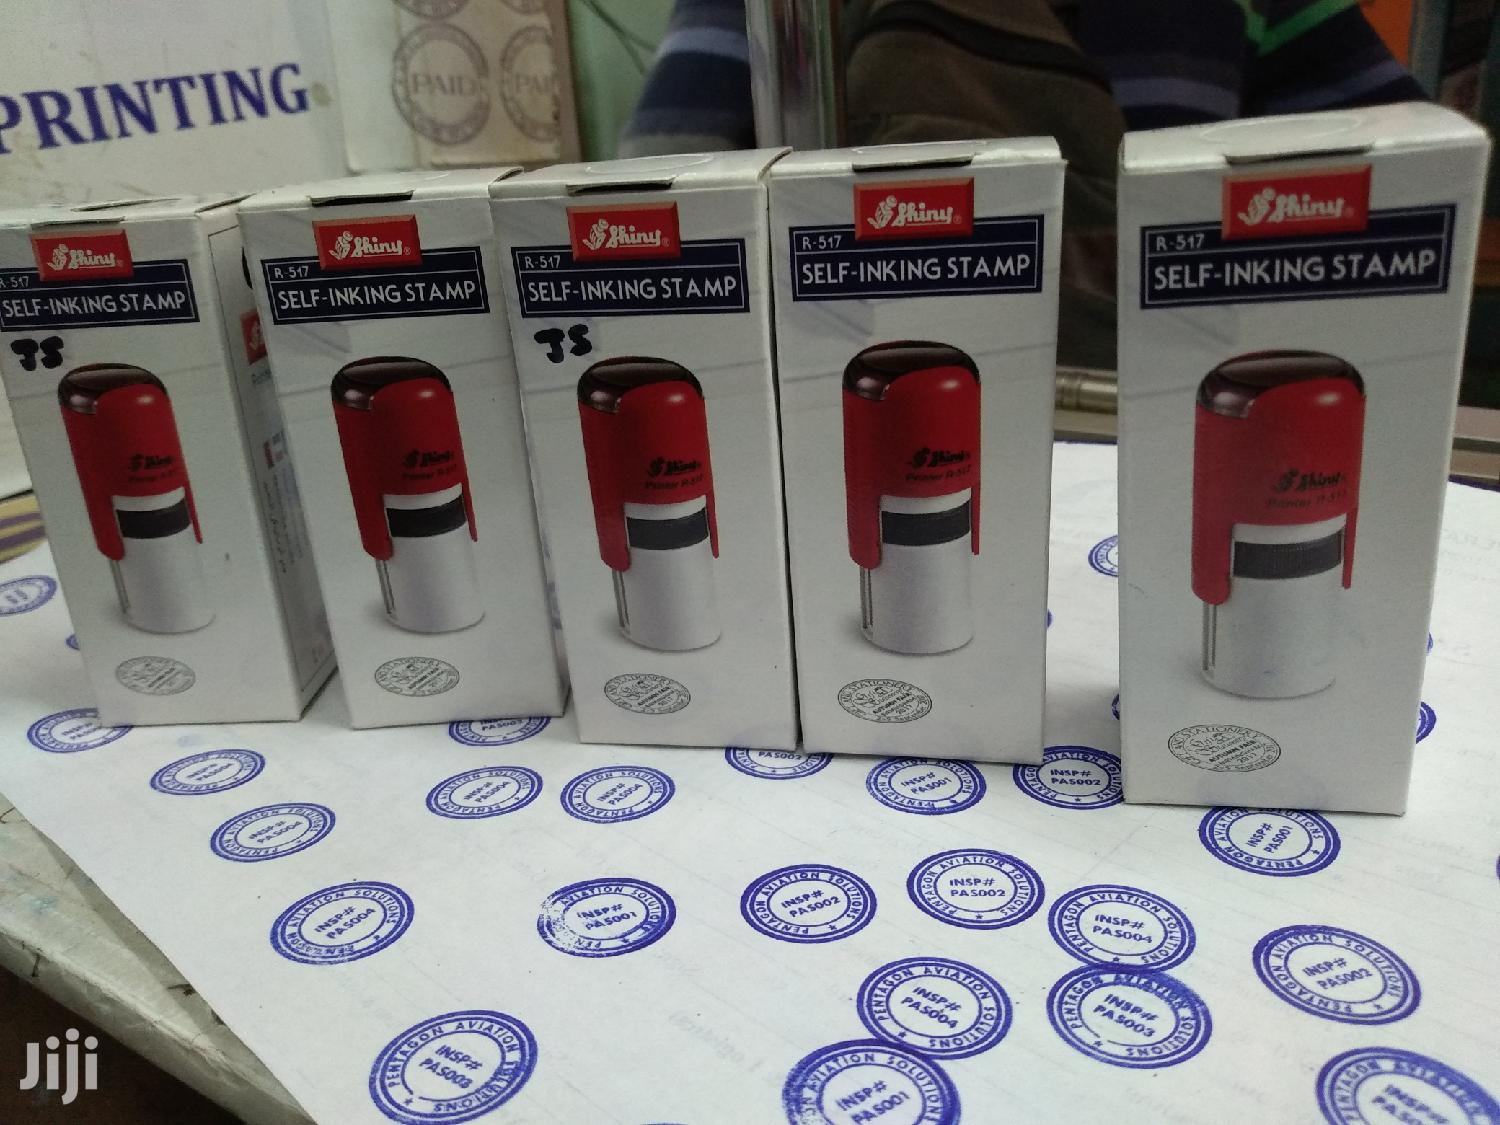 Rubber Stamps And Company Seal   Stationery for sale in Nairobi Central, Nairobi, Kenya